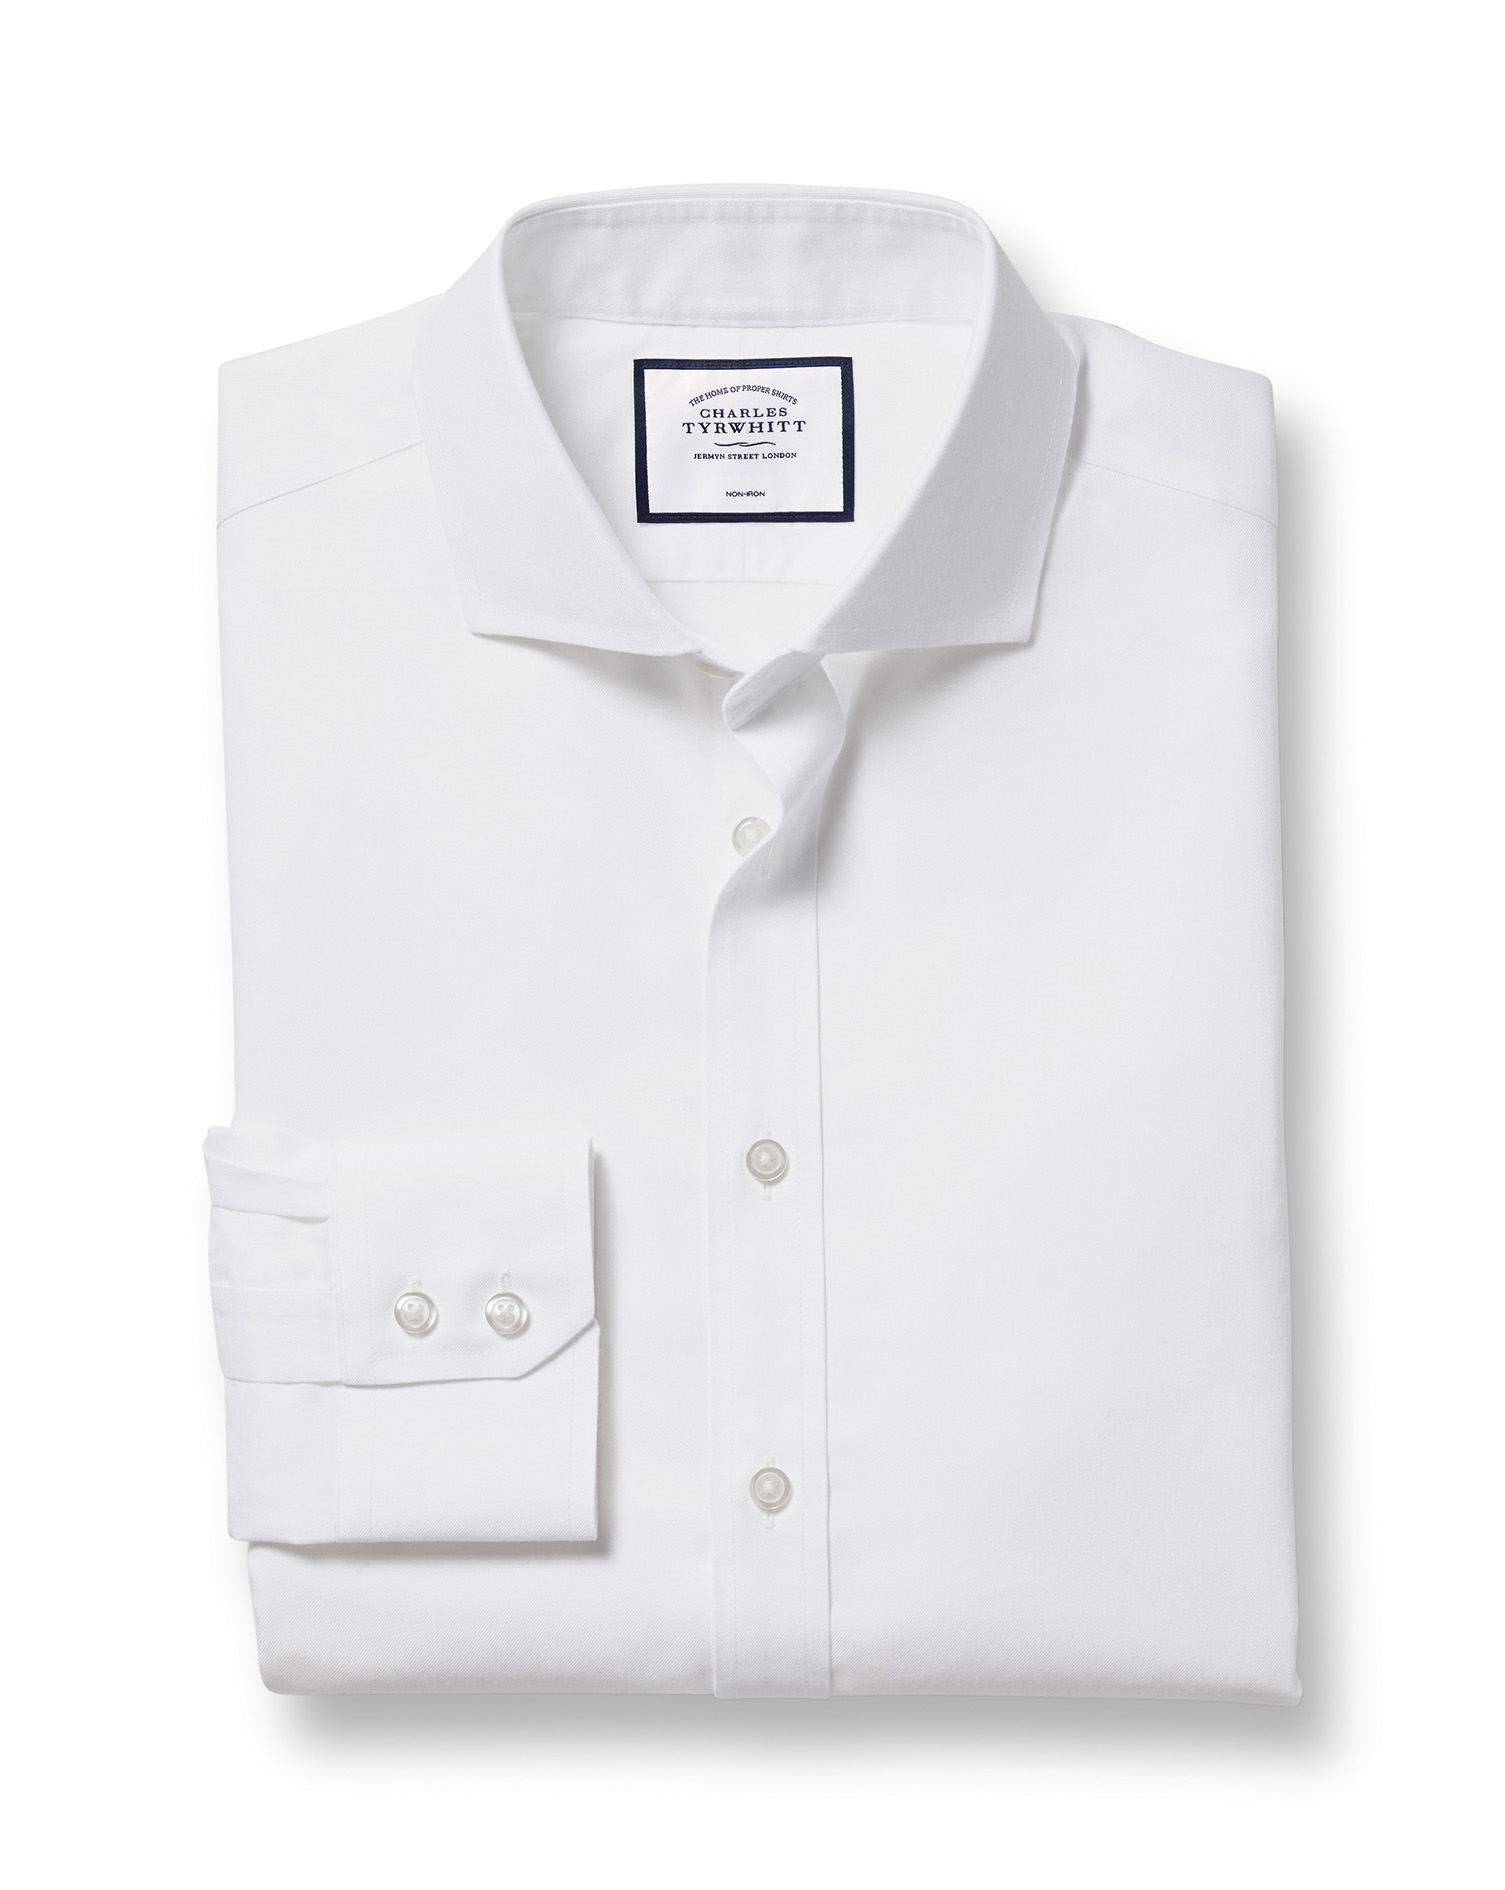 Slim Fit Extreme Cutaway Non-Iron Twill White Cotton Formal Shirt Single Cuff Size 15.5/35 by Charle